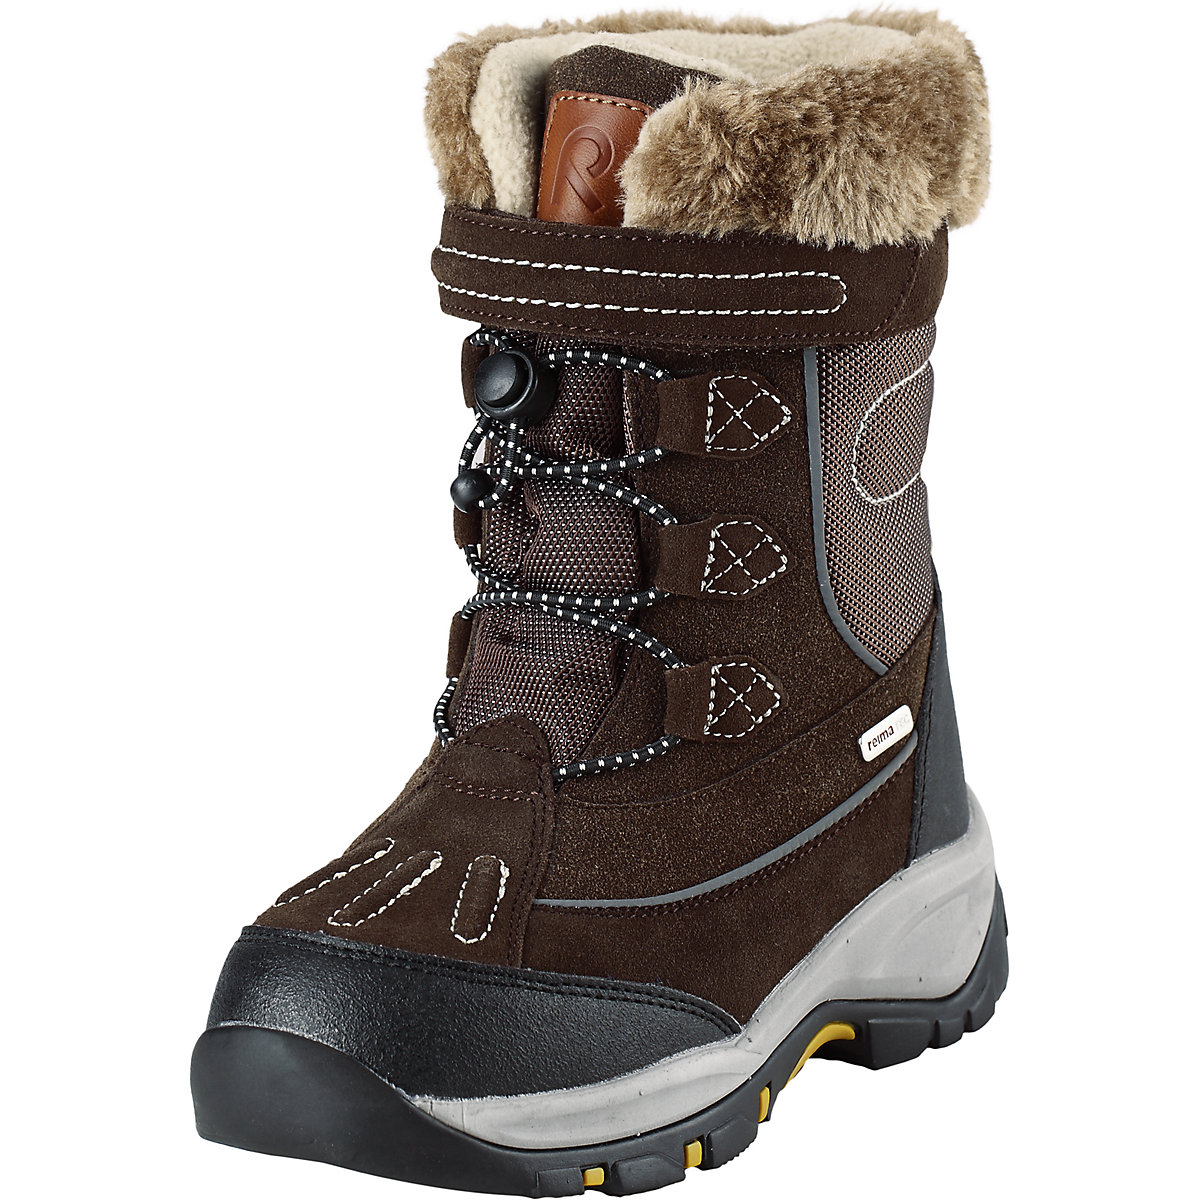 REIMA Boots 8625003 for boys winter boy  children shoes women shoes high heel for winter boots pointed toe ankle boots for women martin boots fashion zip gladiator women boots